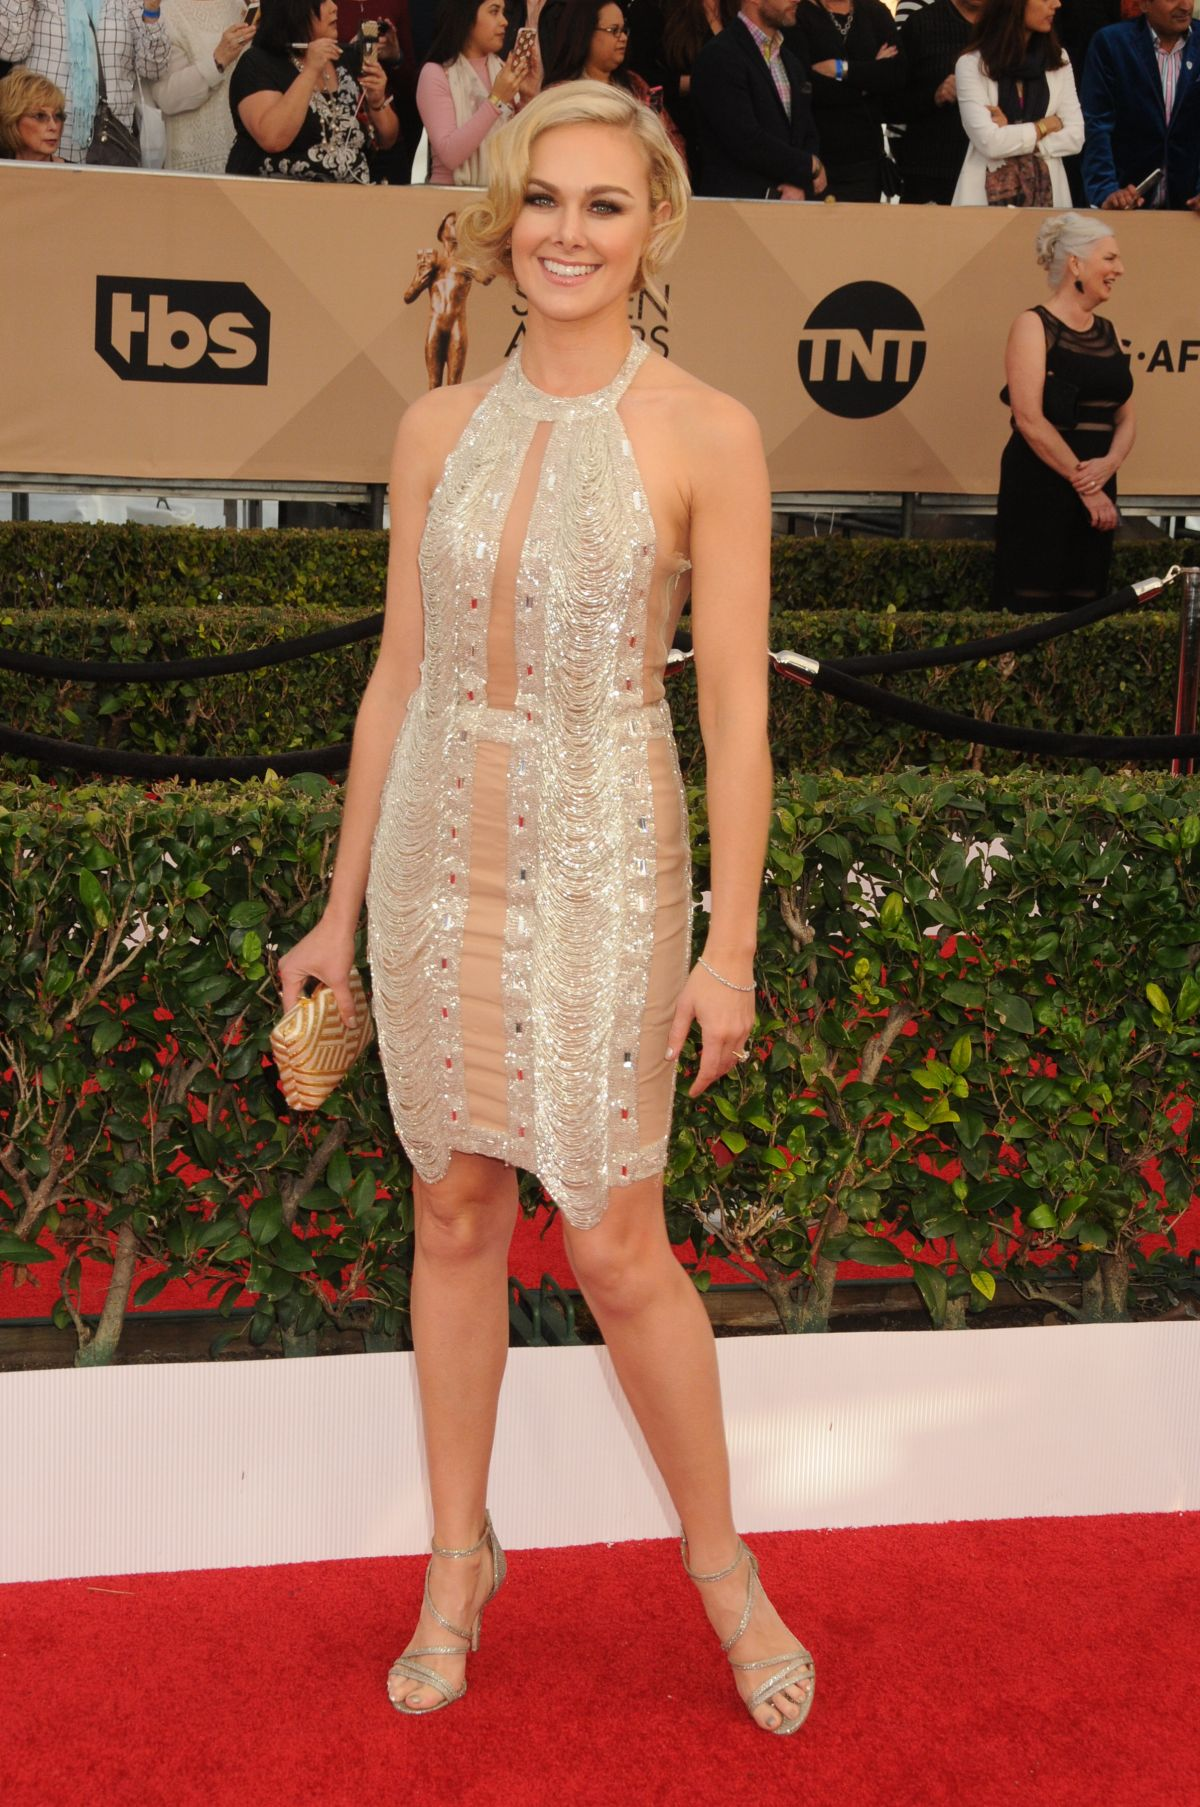 LAURA BELL BUNDY at Screen Actors Guild Awards 2016 in Los Angeles 01/30/2016